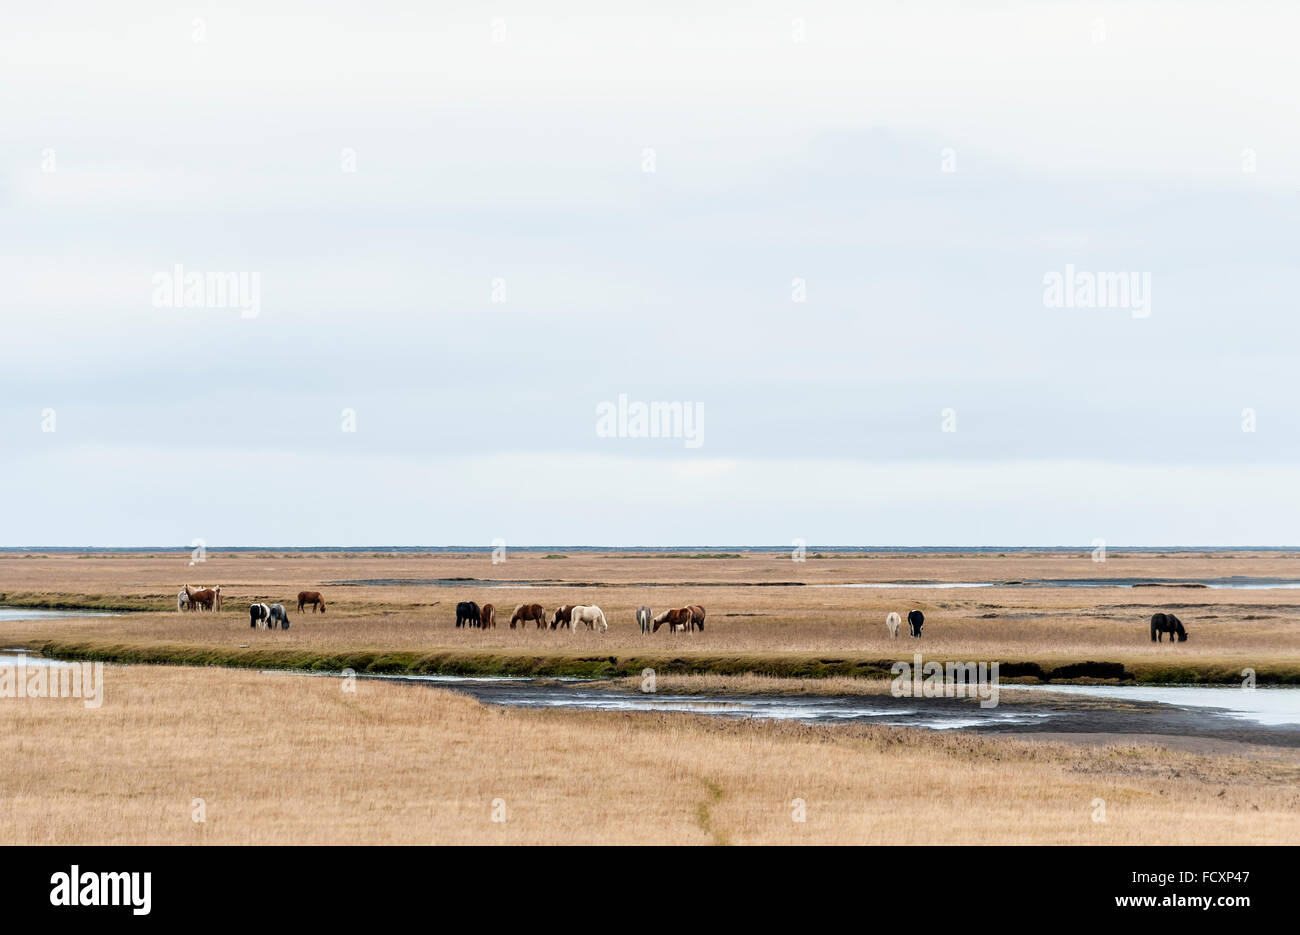 Horses in wide open landscape, Iceland - Stock Image